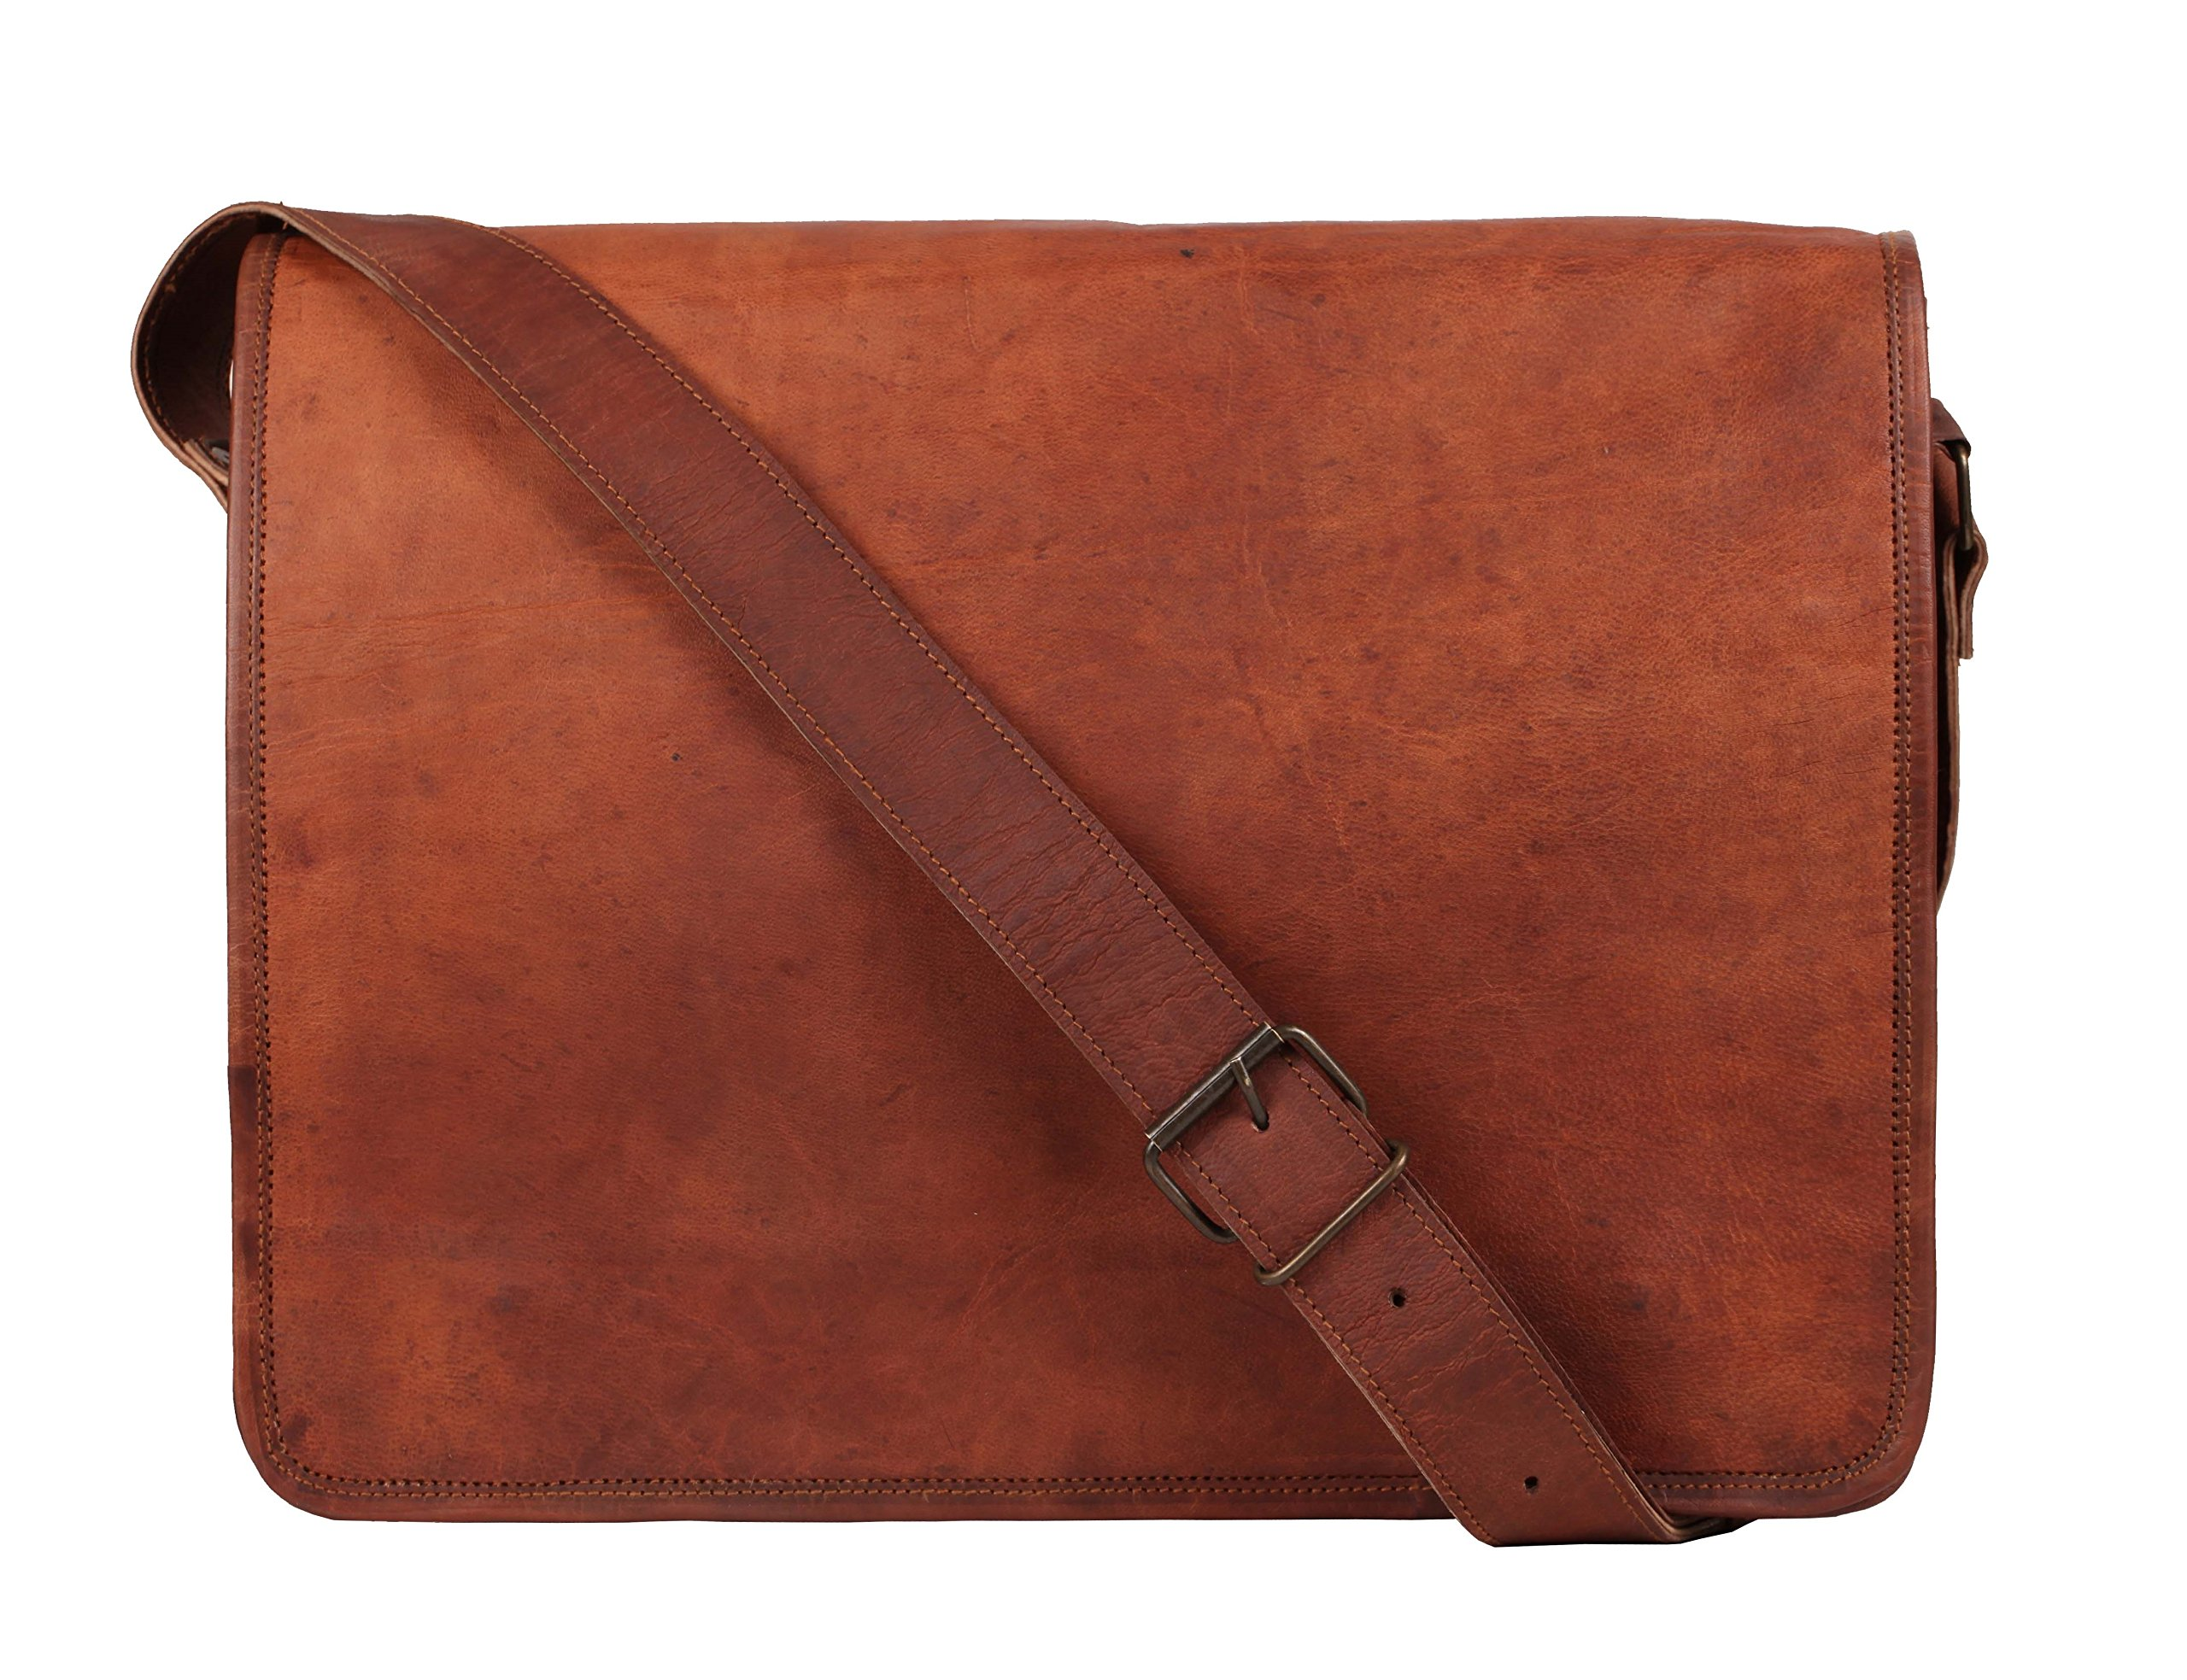 Rustic Town 13 inch Vintage Crossbody Genuine Leather Laptop Messenger Bag (13 Inch)